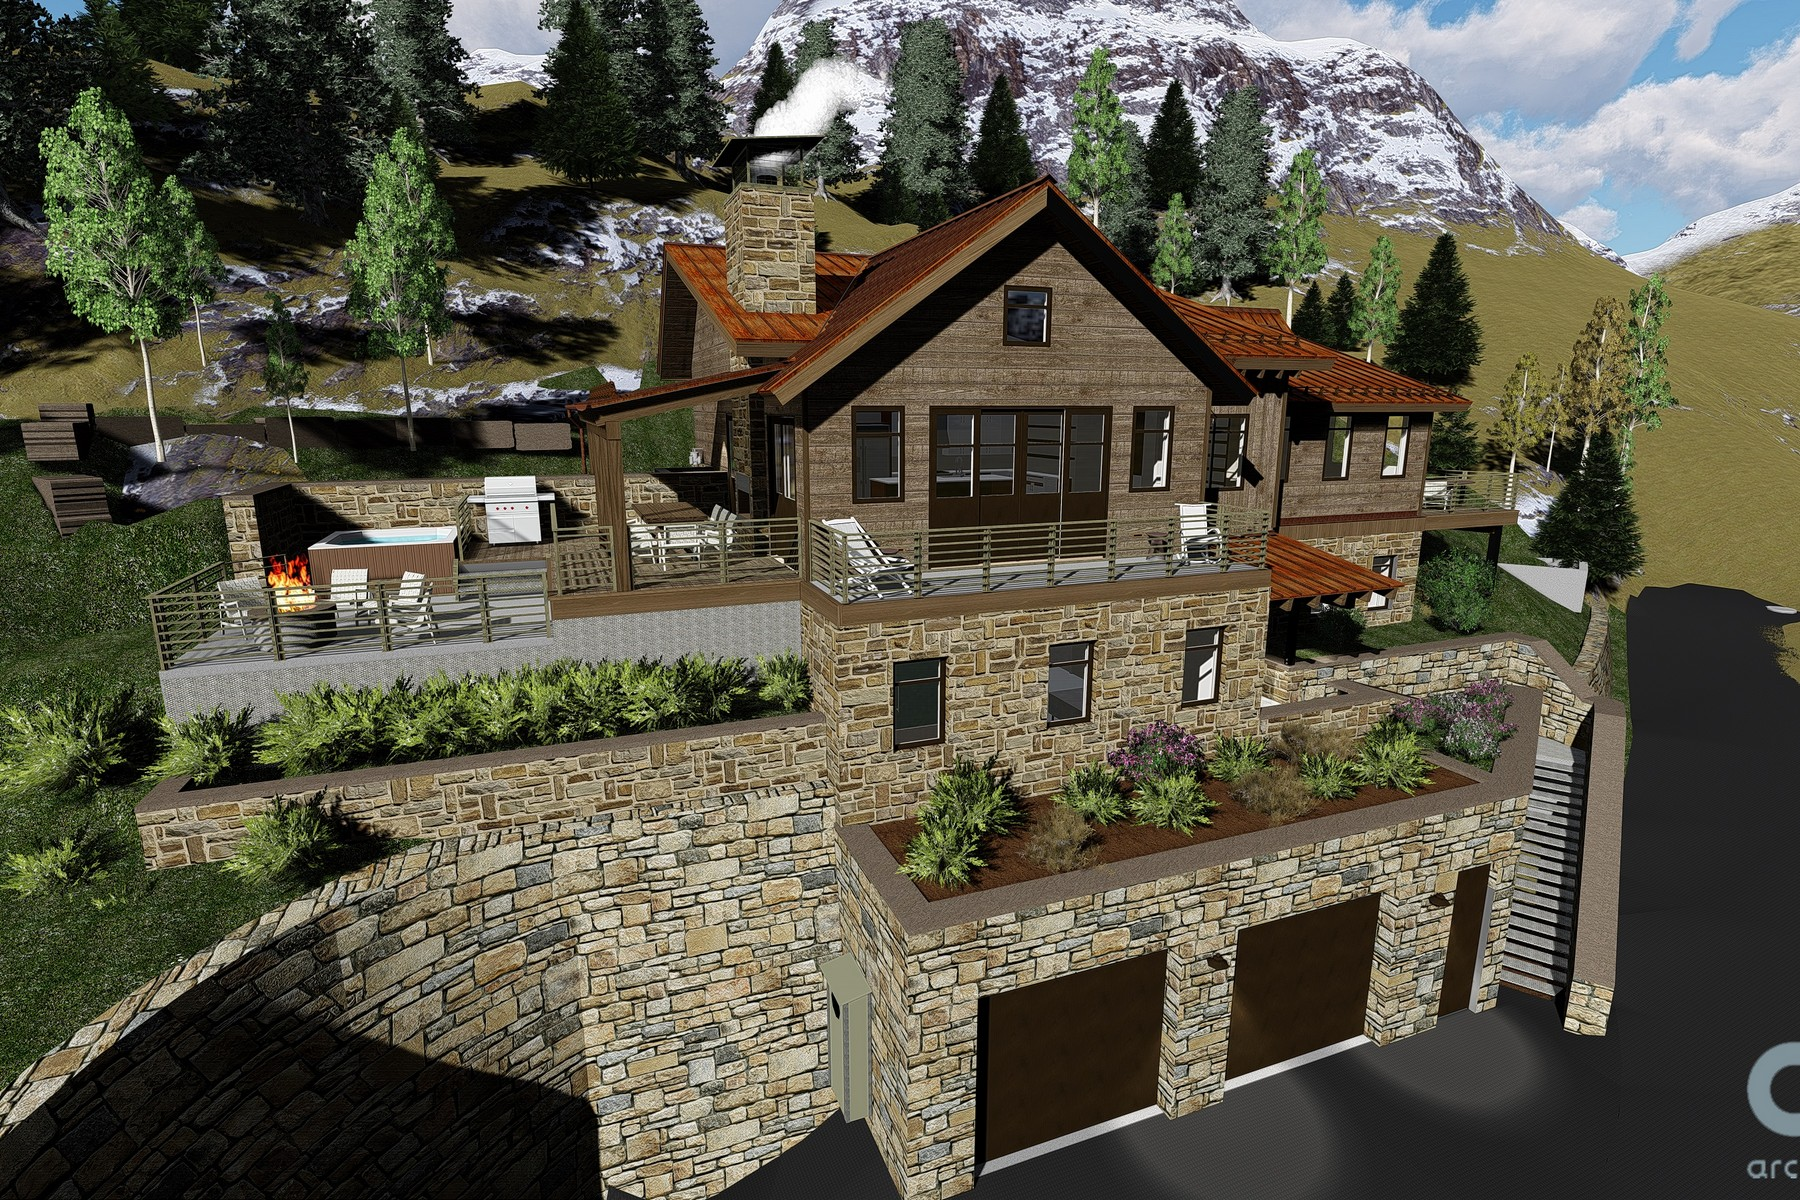 Land for Sale at East Gregory Avenue Estate Lot Lot 3, East Gregory Avenue, Telluride, Colorado, 81435 United States